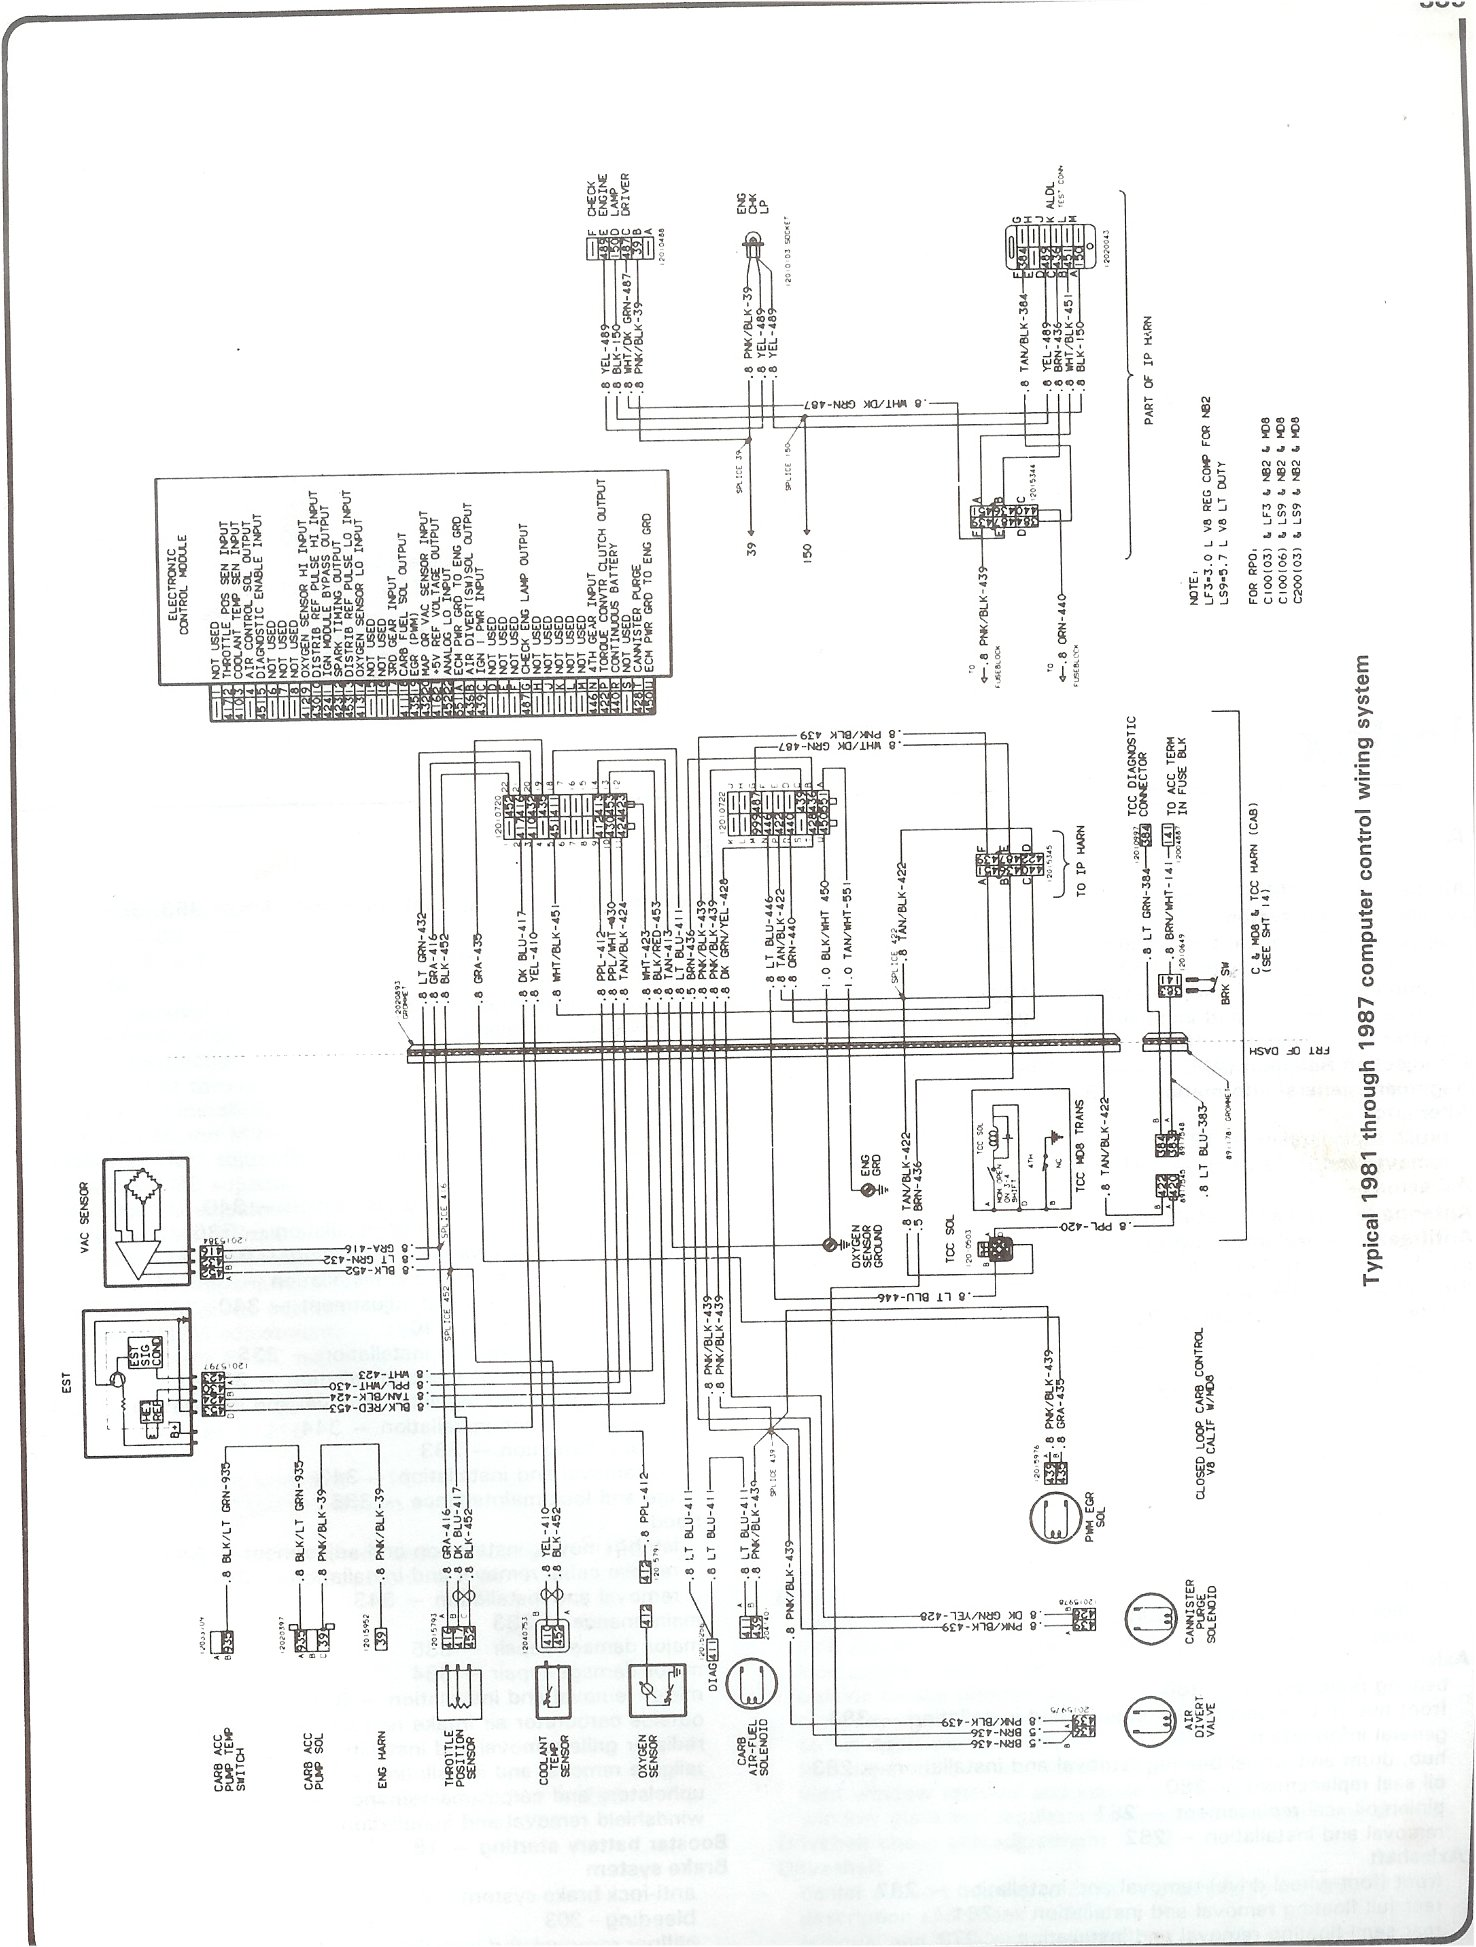 81 87_computer_control_wiring complete 73 87 wiring diagrams 1986 chevy truck wiring harness at mifinder.co